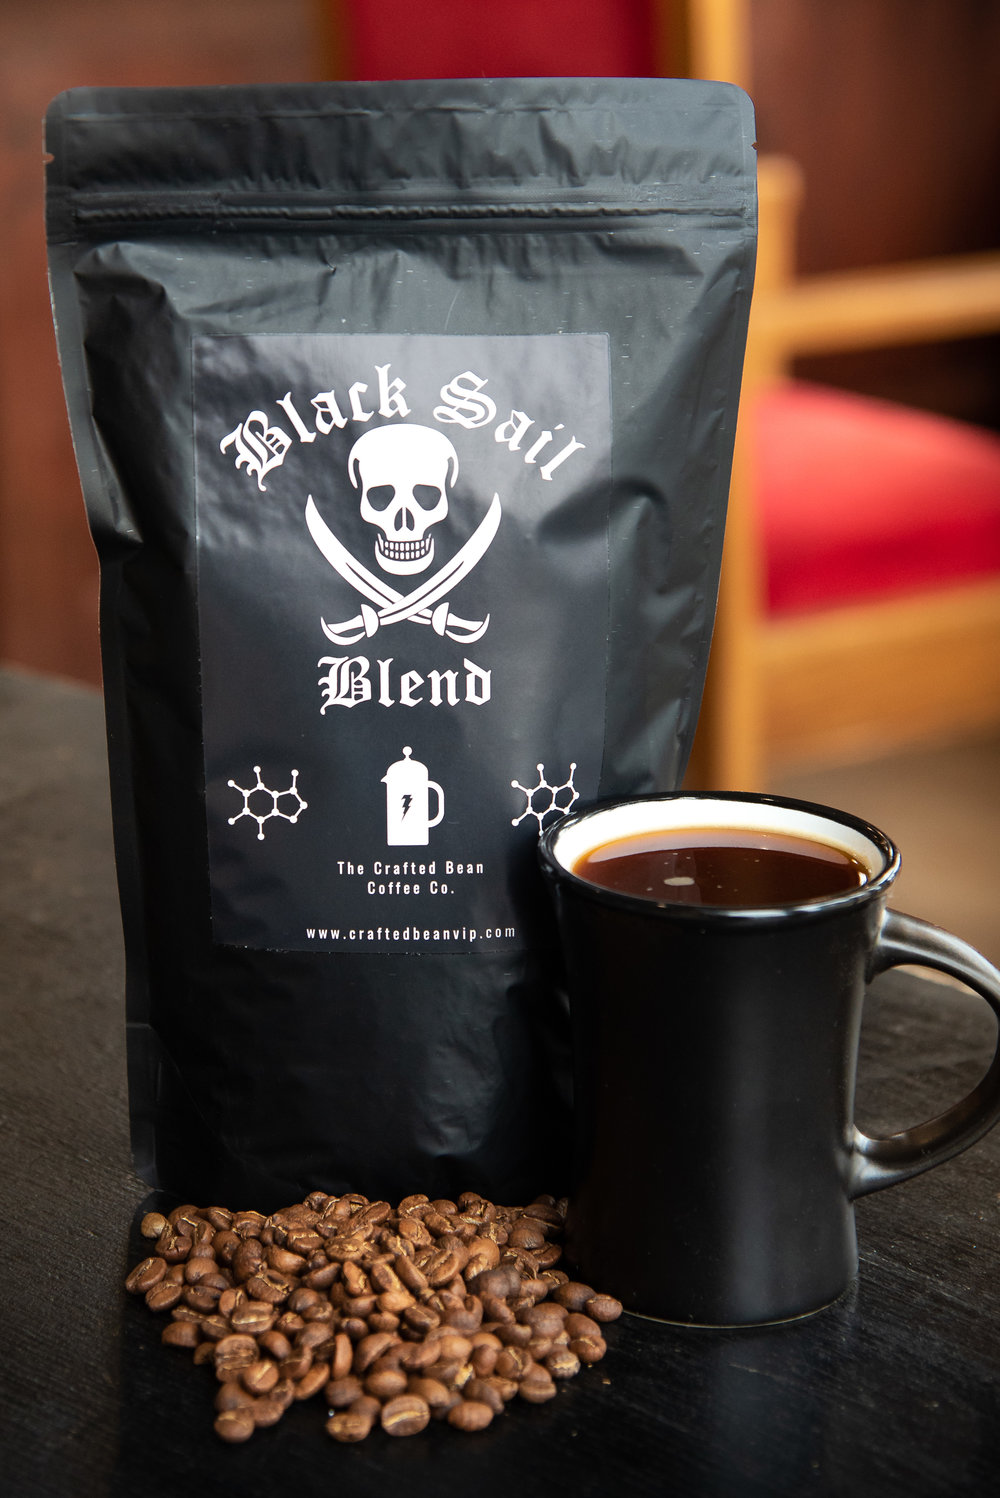 Shop Amazon! - Check out our Black Sail Blend on AMAZON!Under a black sail we thrive!This is our credo, we will thrive in any environment and wave our black sail proudly!This is why we made Black Sail Blend, strong enough to get you through anything!Our Black Sail Blend is sourced from Colombia, in the volcanic & mountainous region of Cauca. Carefully selected, our beans come from altitudes of 1200 and 2000 MASL, then blended during the roasting process. The result is an all natural washed coffee blend.The profile is tartaric red fruits (apple, cherry), flavorful molasses and toasted marshmallow. Our goal is to provide a bold and complex brew! Roasted to bring out the antioxidants and anti inflammatory properties known to this bean. Black sail will entertain the coffee enthusiasts & caffeine seekers alike, strong enough to get you through anything!